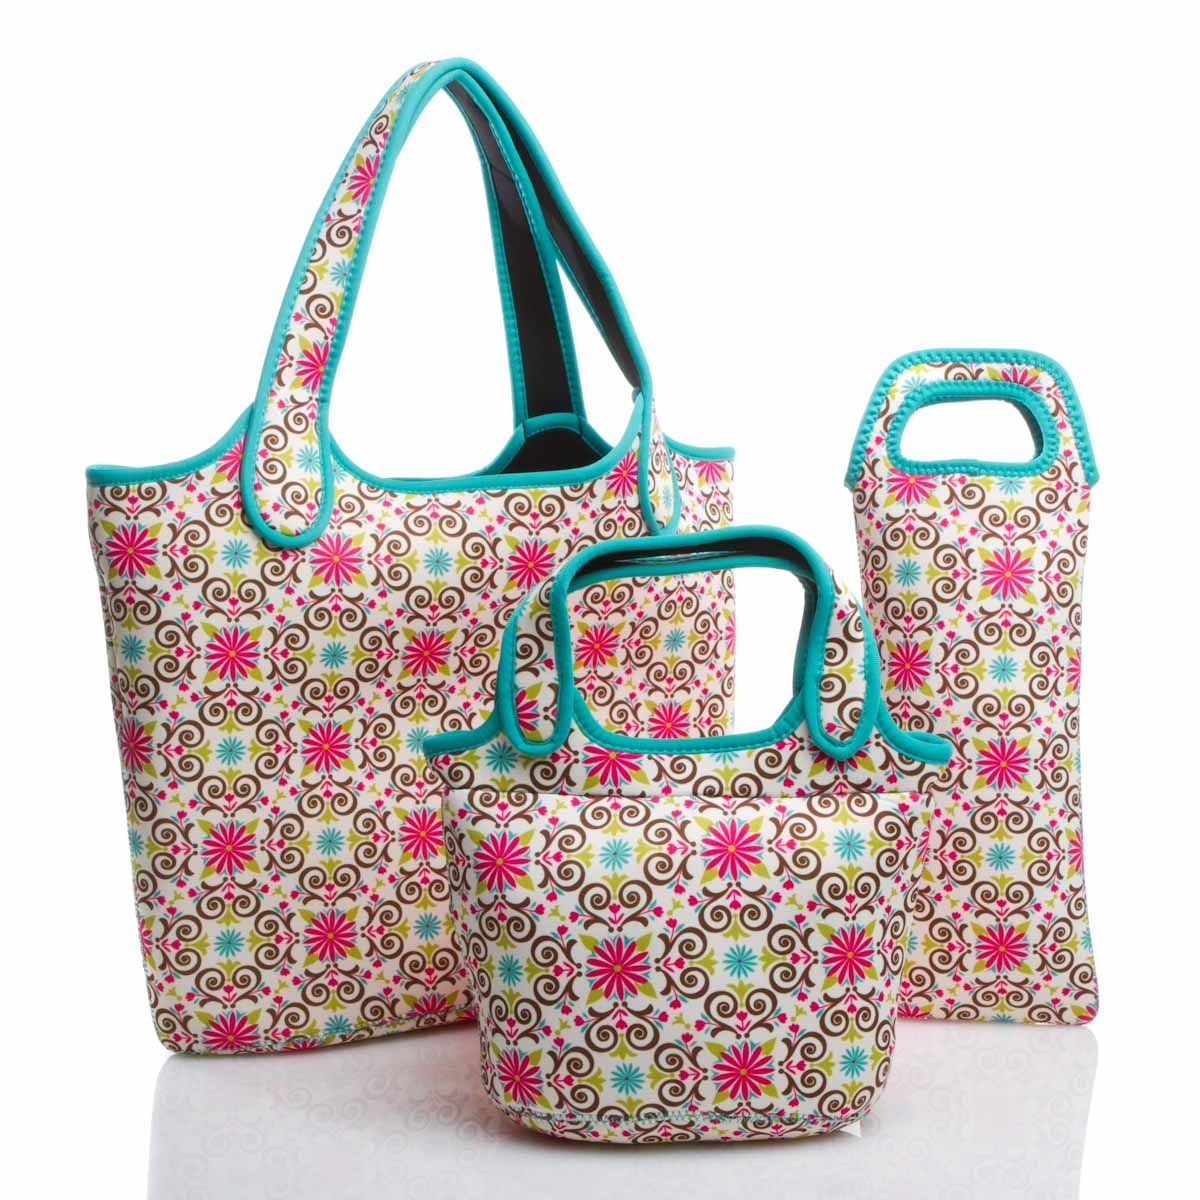 """Work hard, play hard' with this trio: a laptop bag, insulated lunch tote and wine sleeve that travel in style."""""""